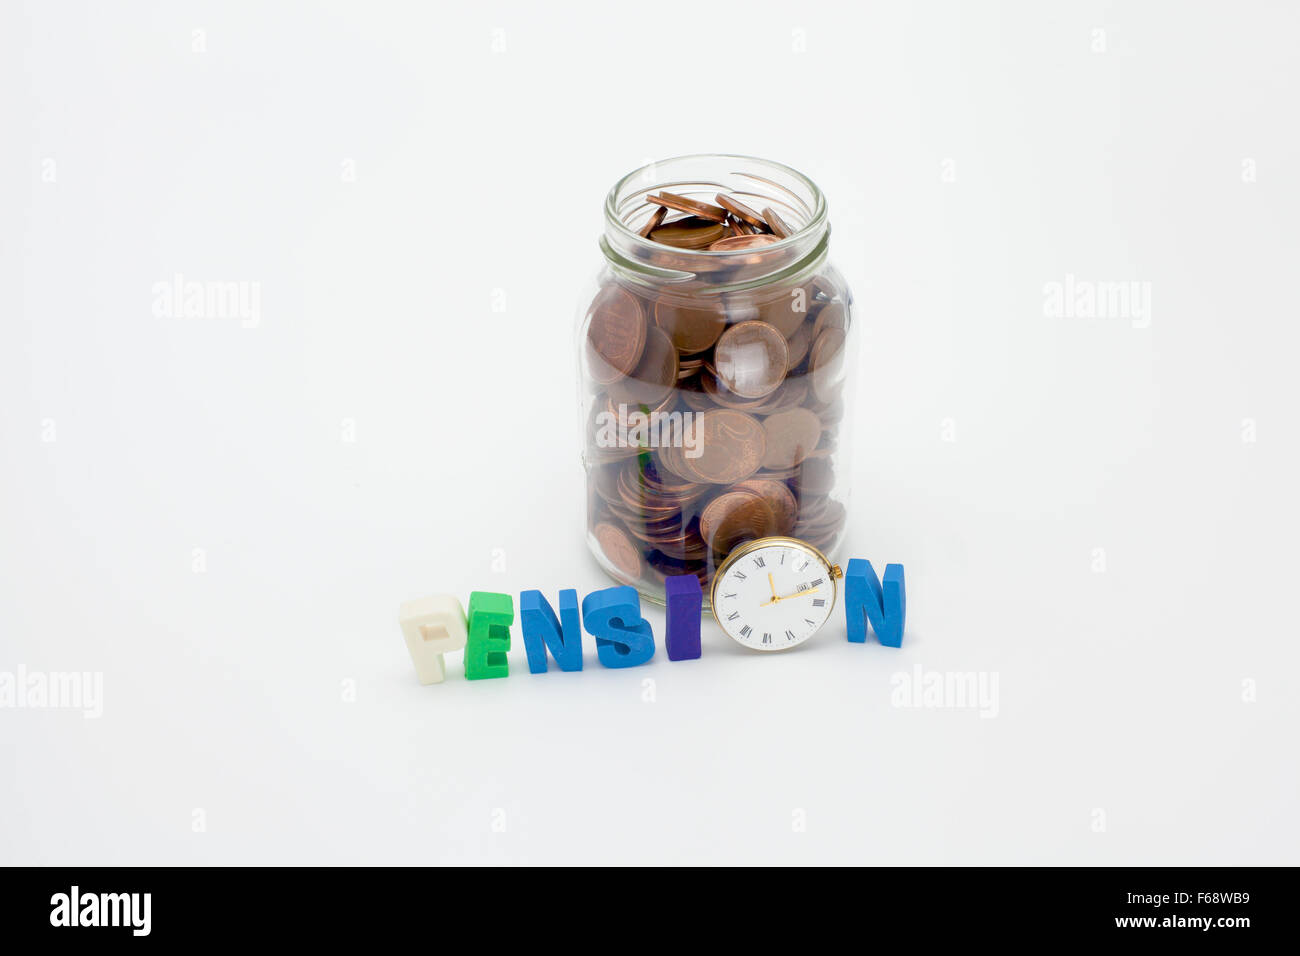 Pension coins in a glass jar with text and clock - Stock Image